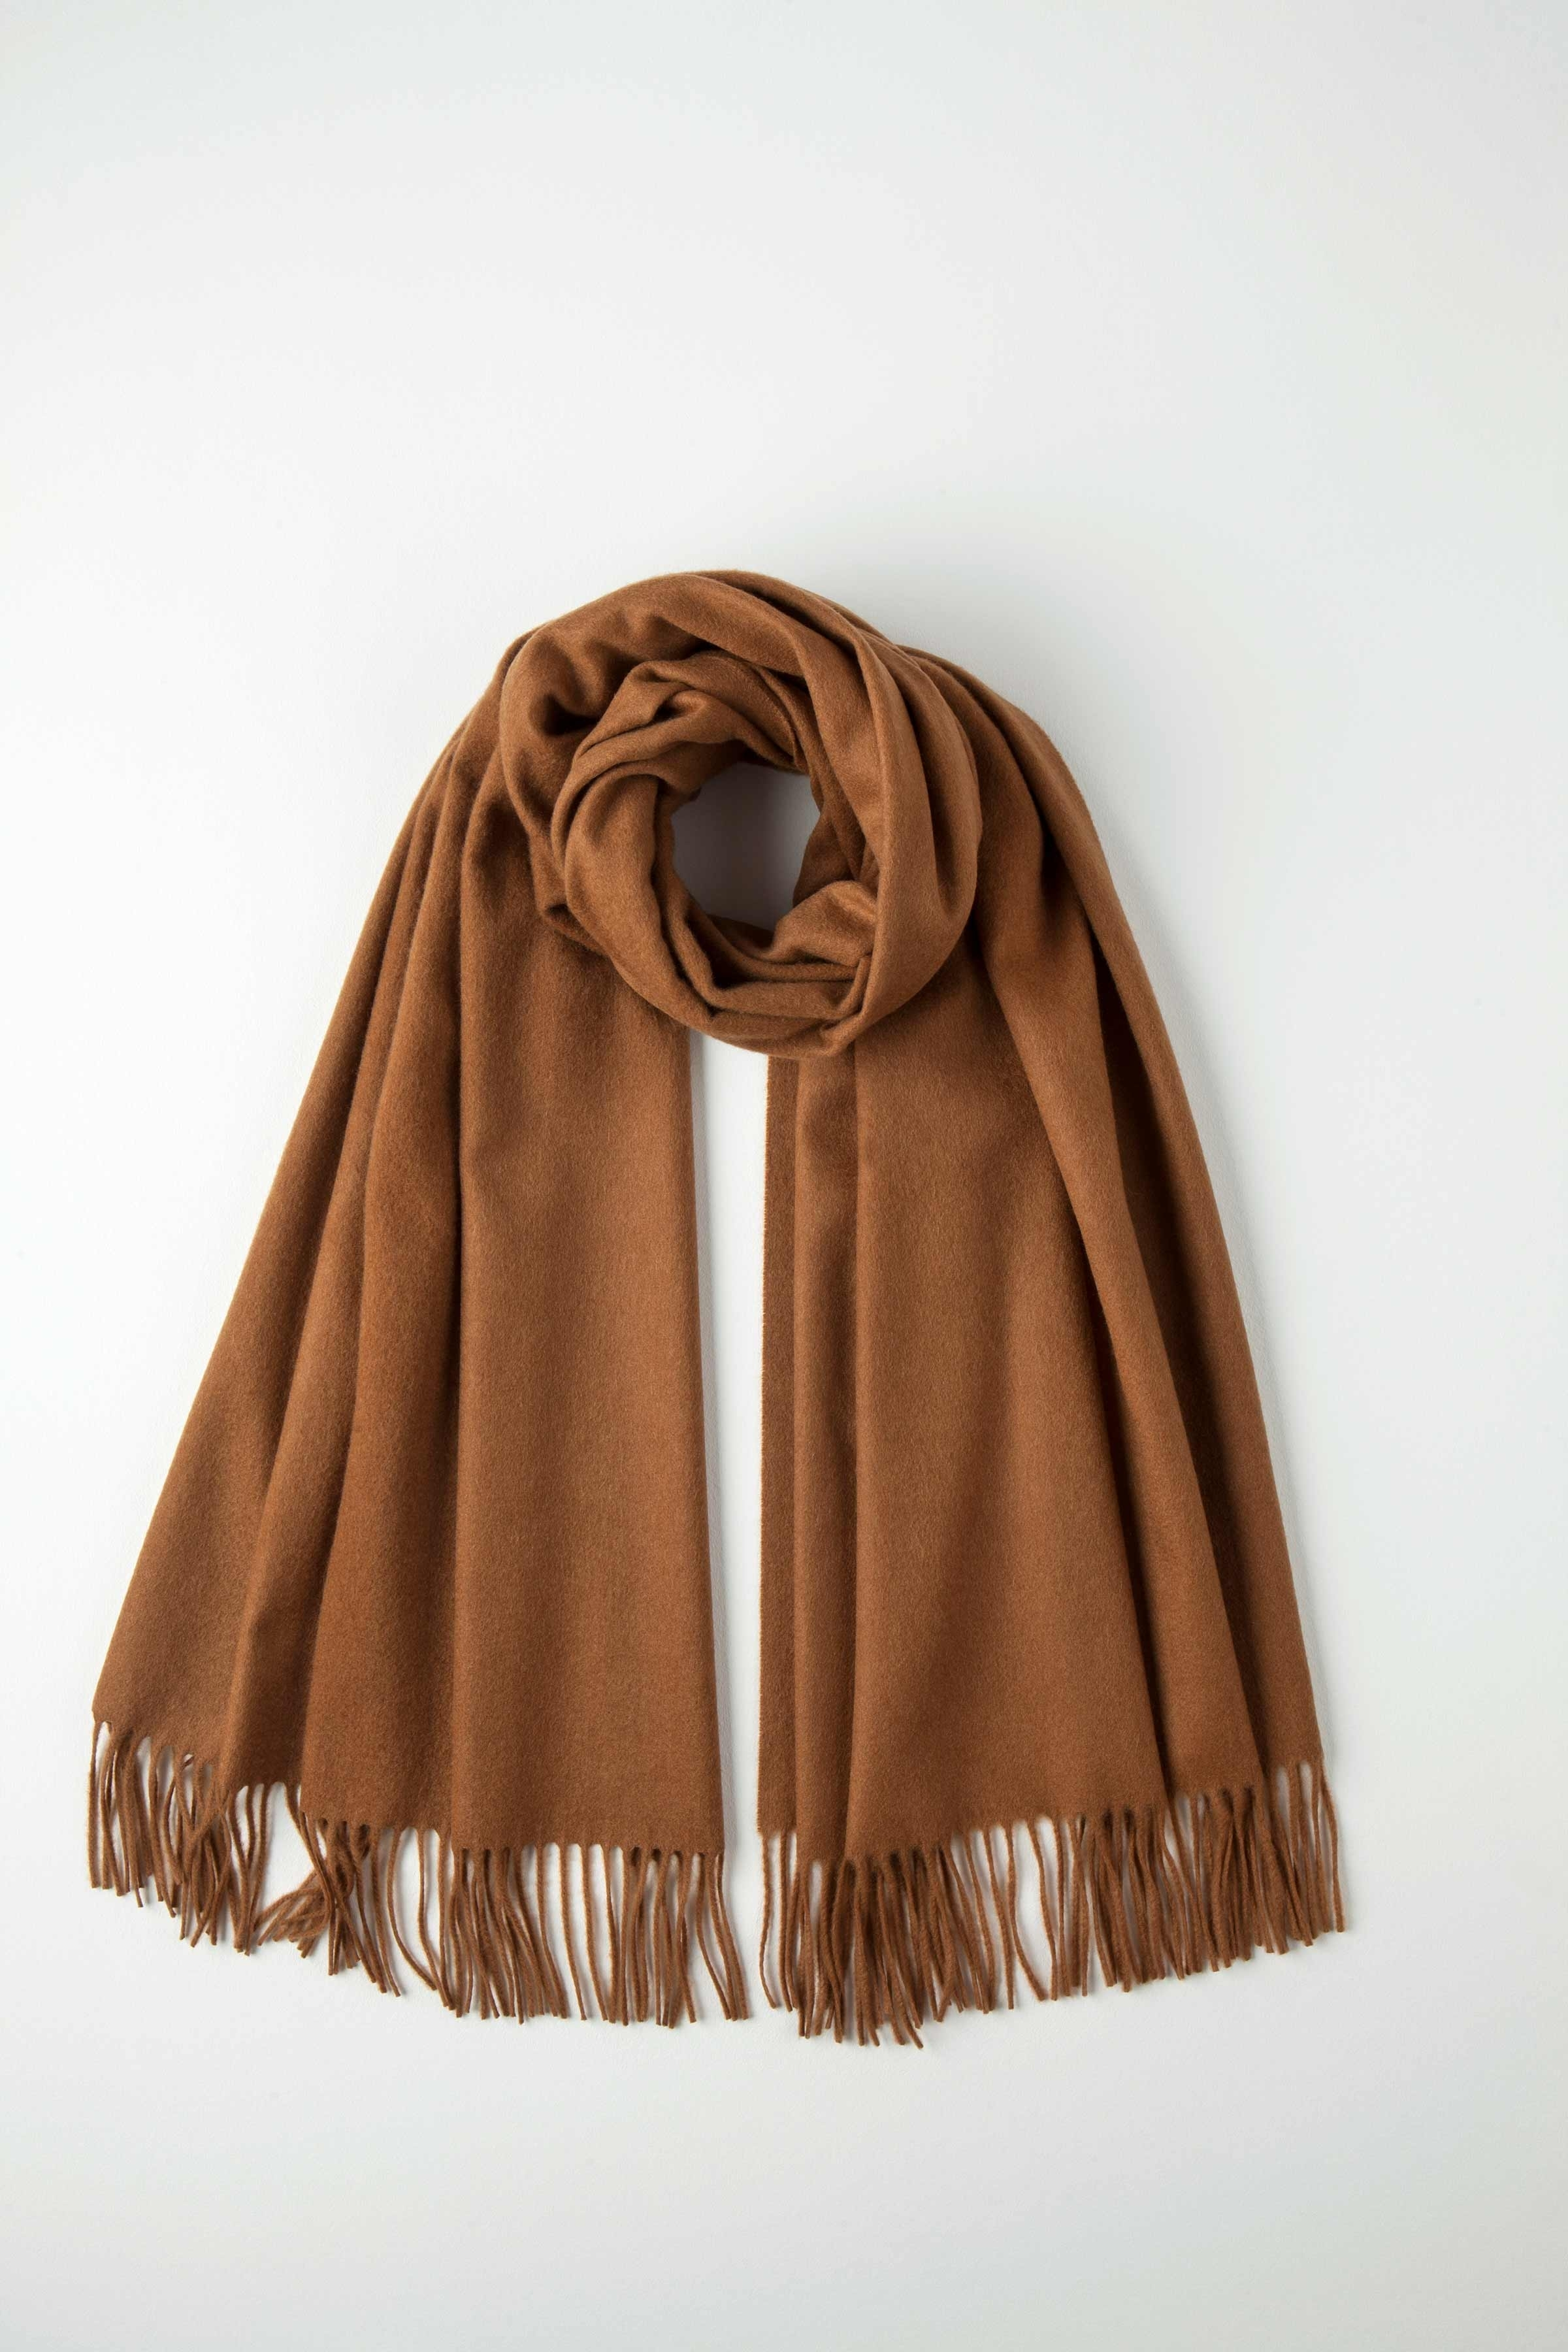 JOHNSTONS OF ELGIN TOFFEE CLASSIC CASHMERE STOLE